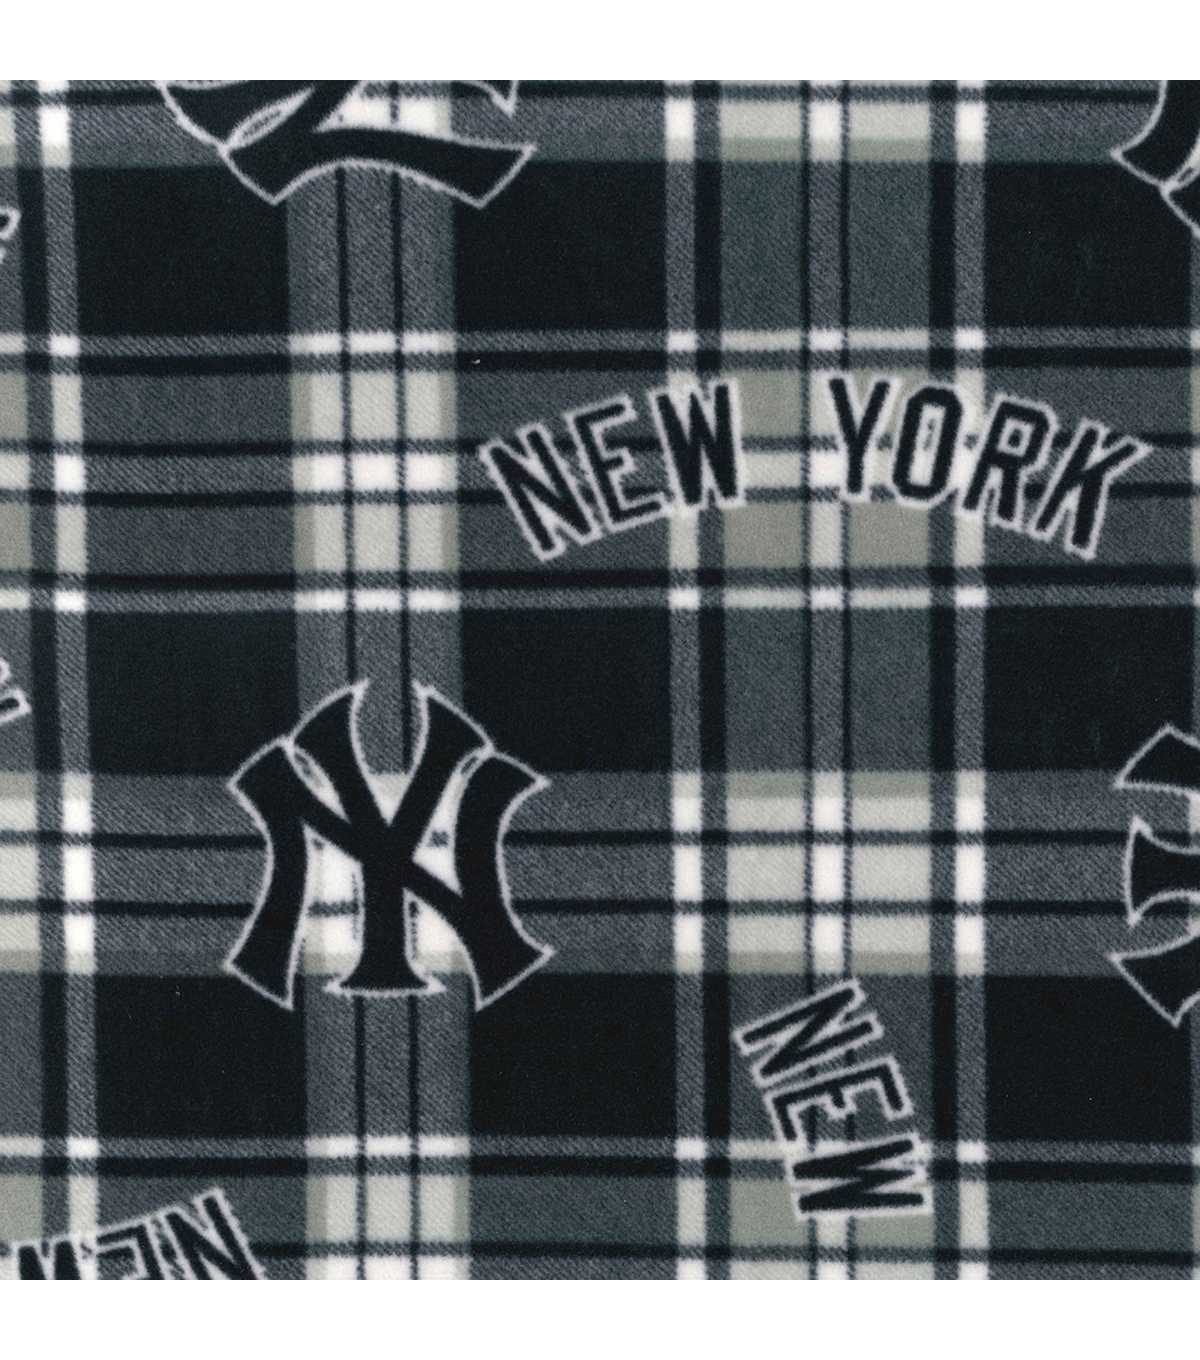 separation shoes 9e849 f1599 New York Yankees Fleece Fabric -Plaid